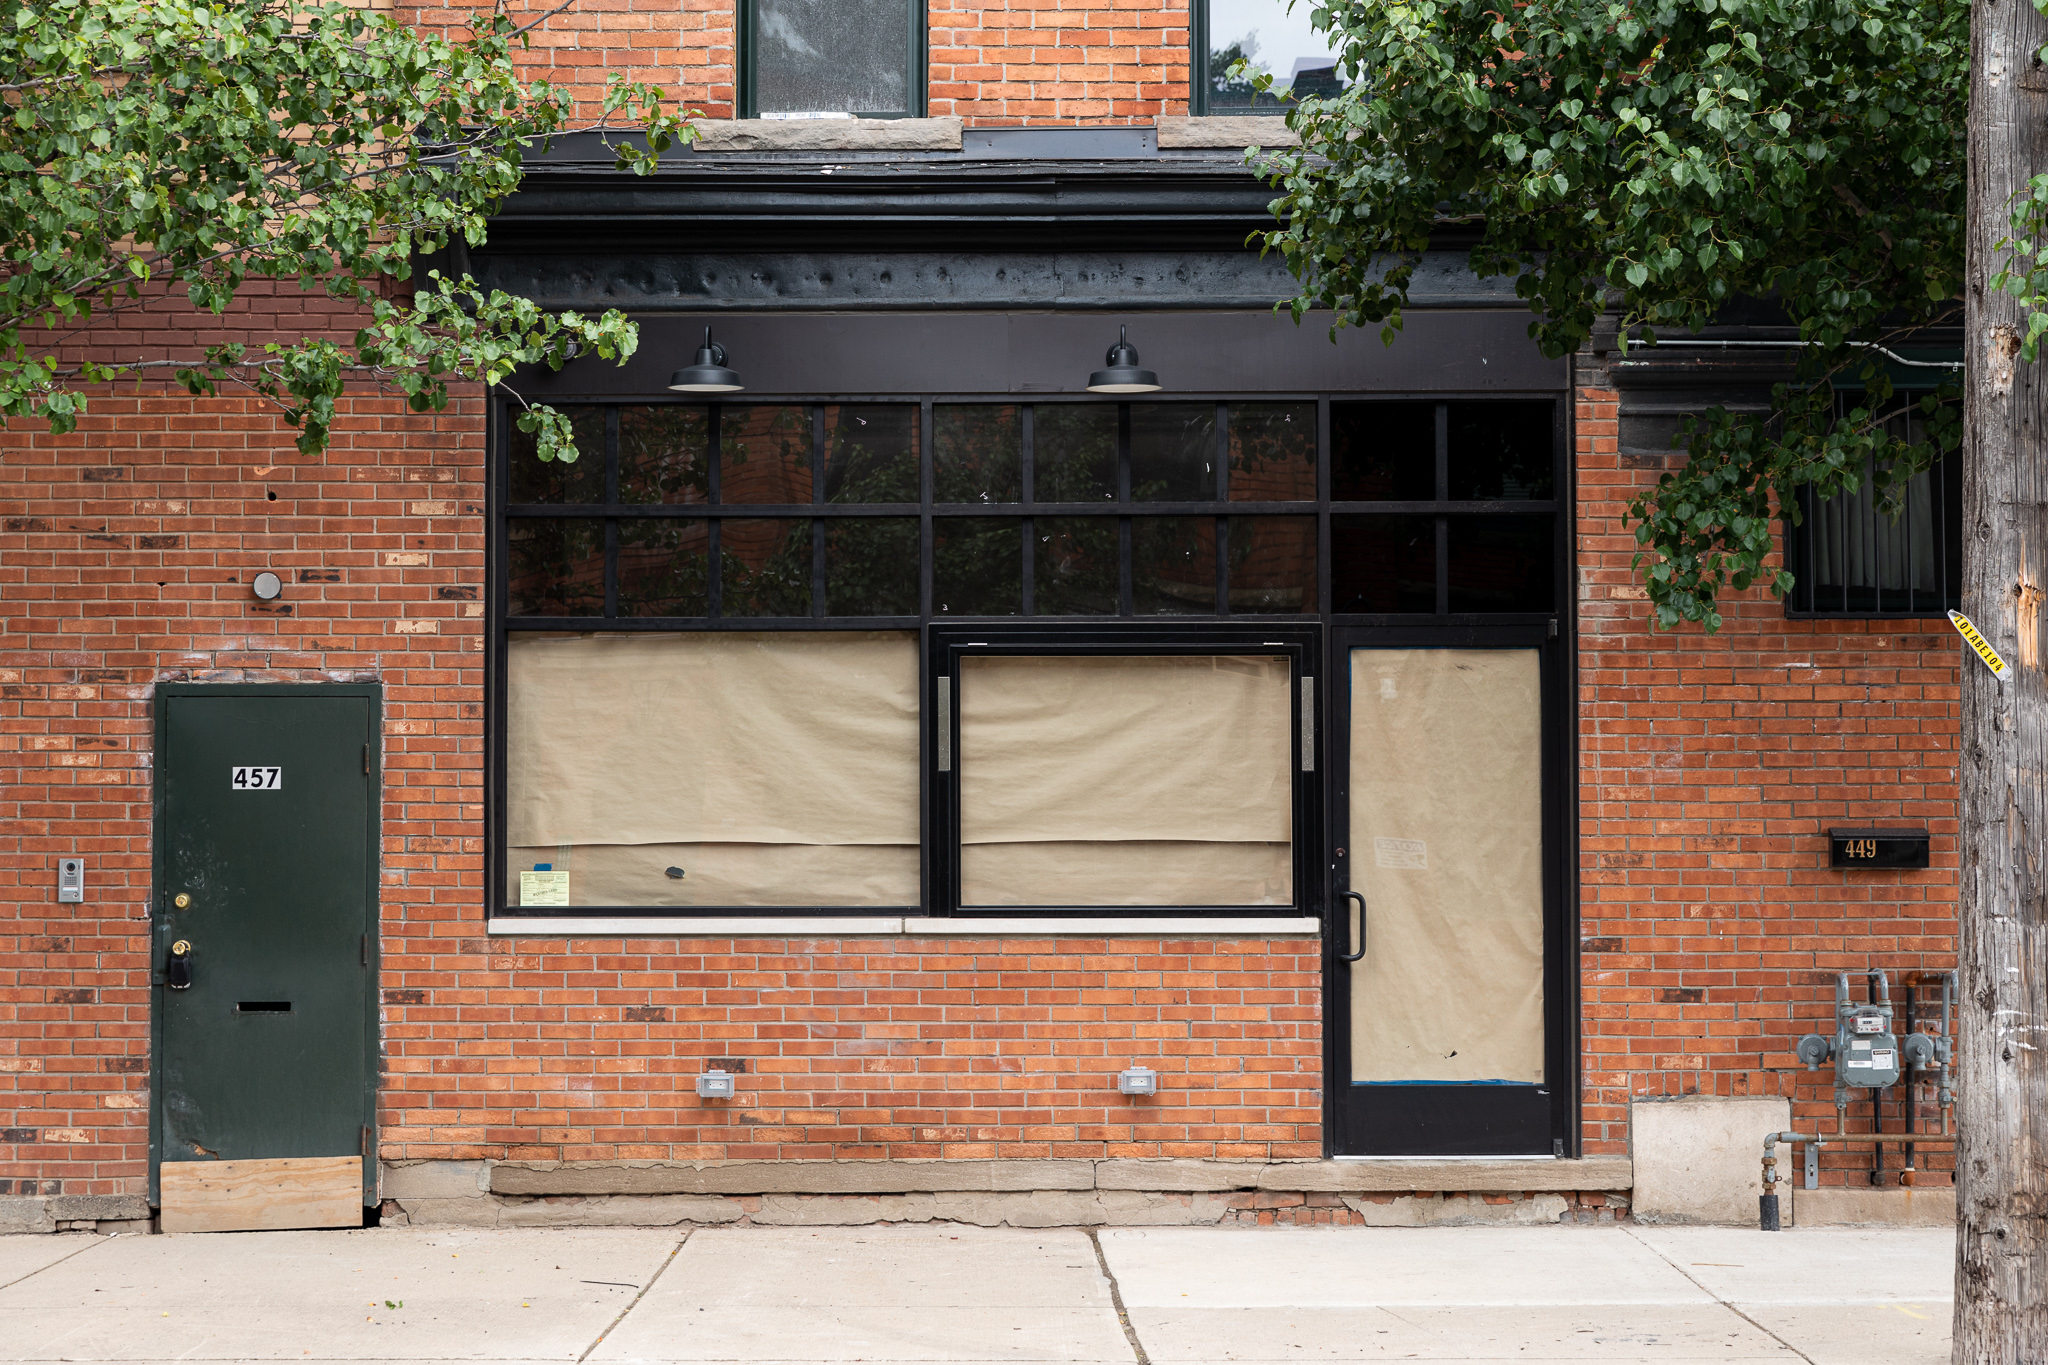 The building that houses Milwaukee Caffe has red brick walls and two sets of black-framed windows and a clear glass door. All the windows and doors are obscured by brown paper.